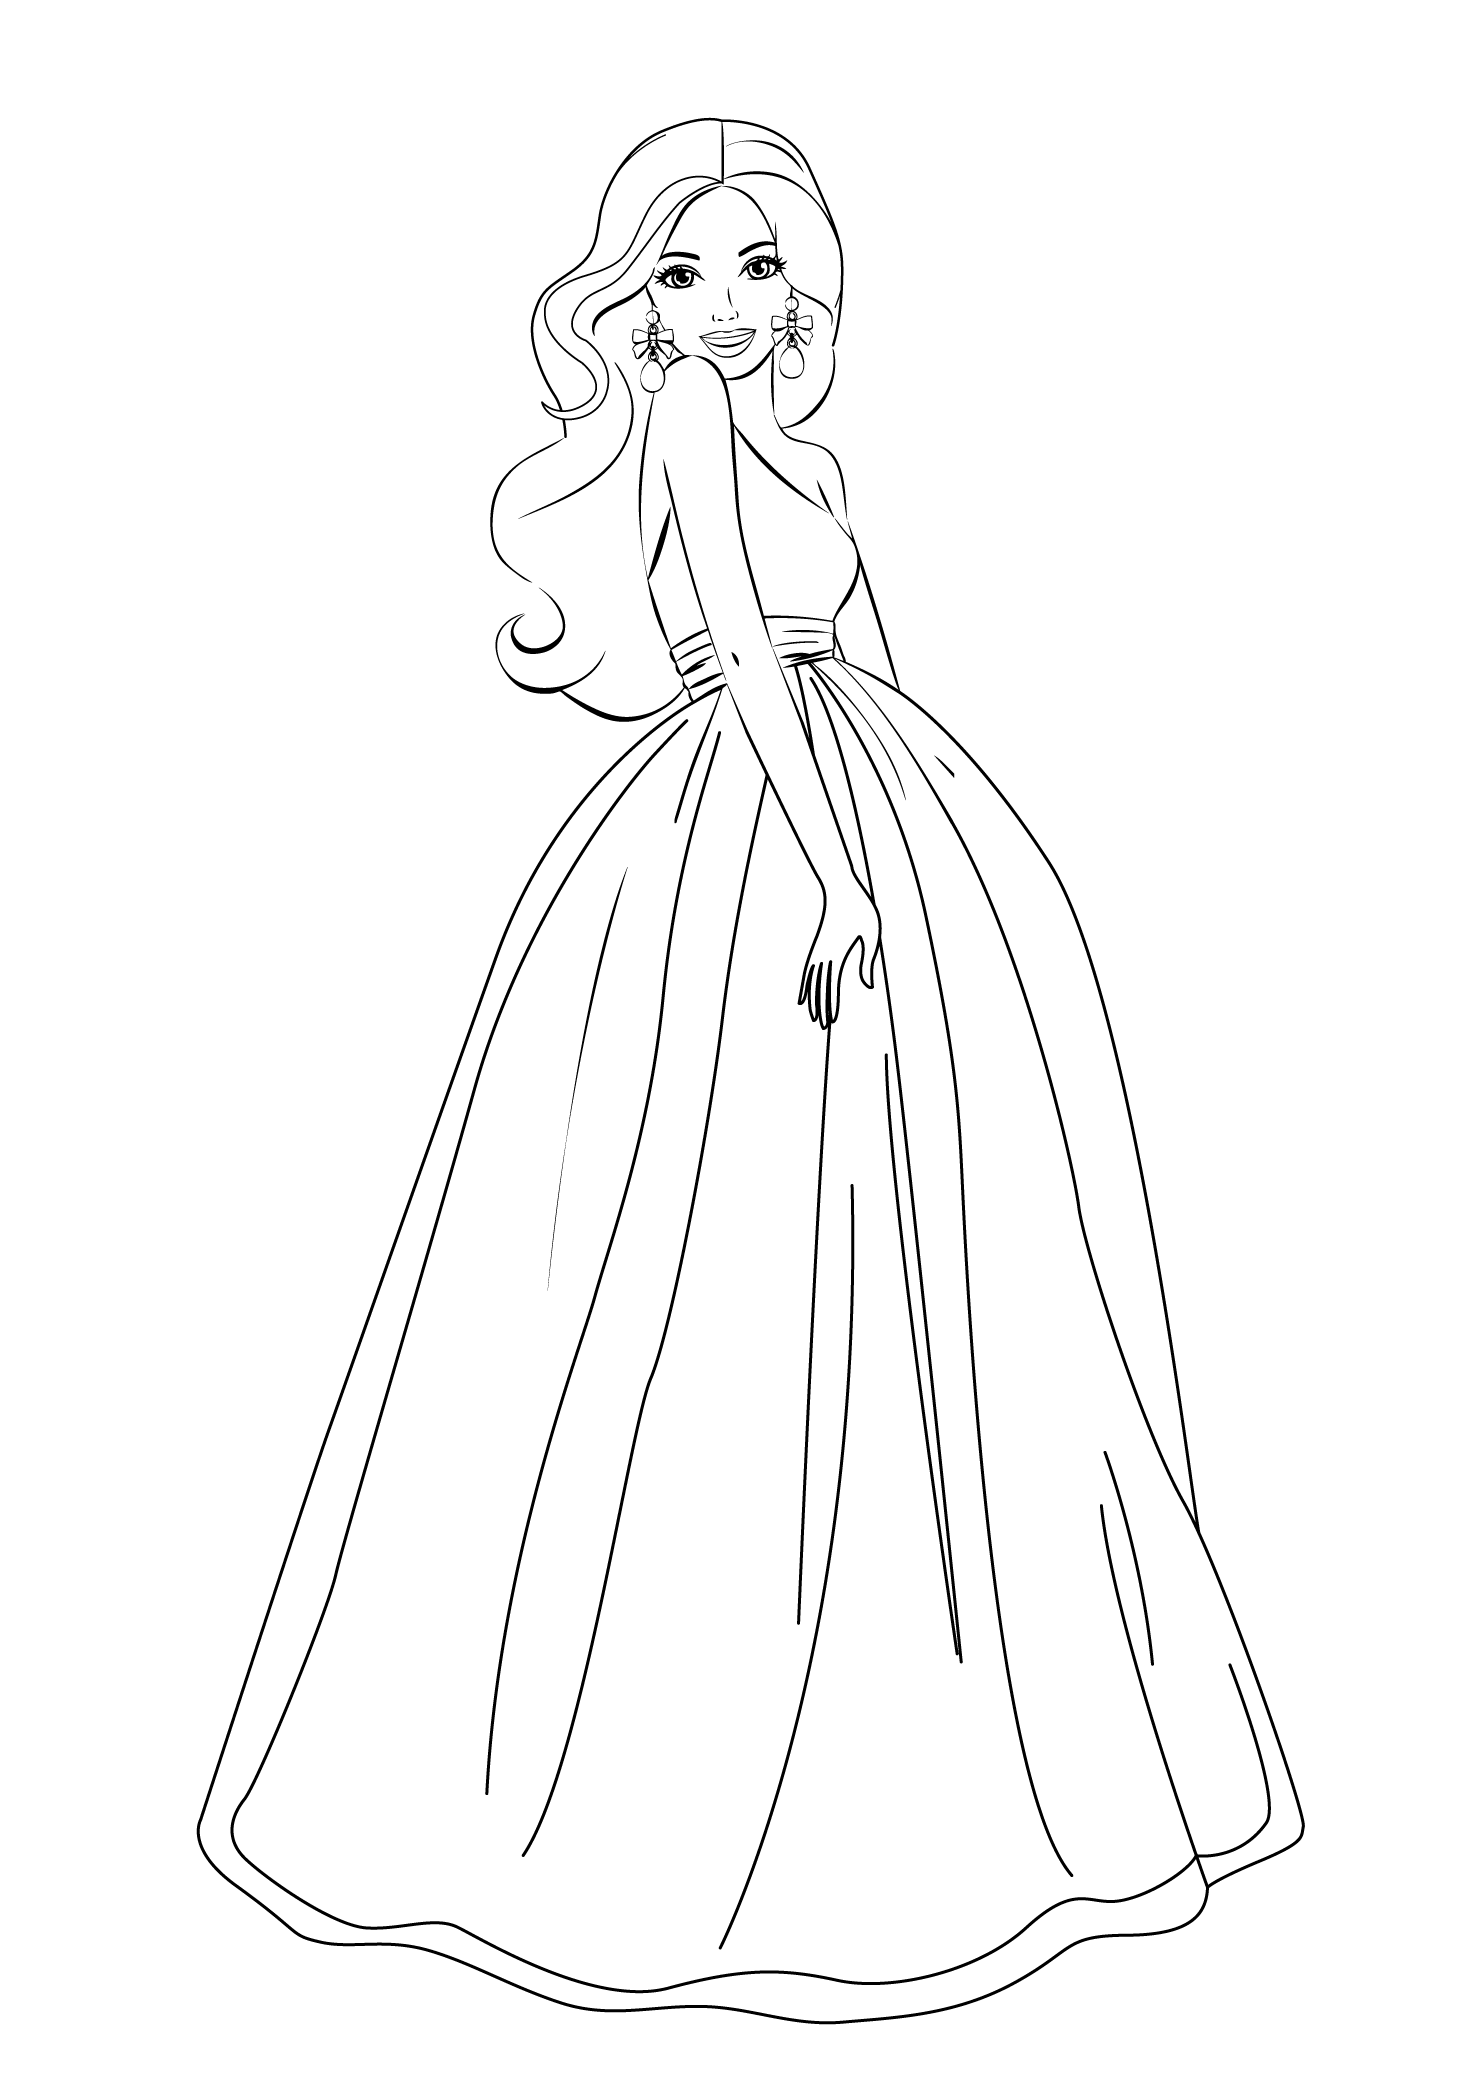 Barbie clipart printable. Coloring pages for girls